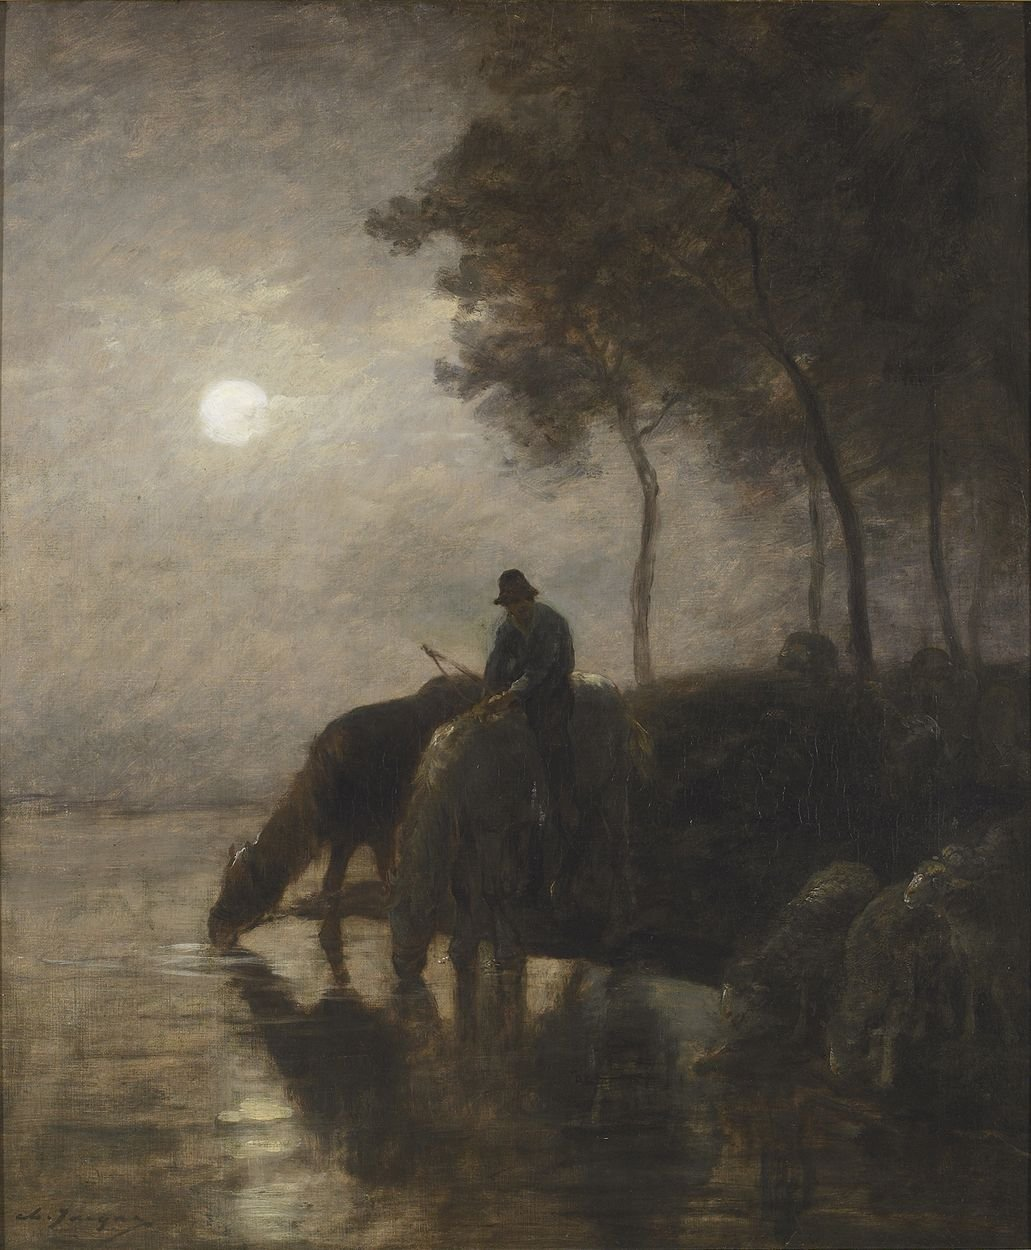 Chevaux et moutons s'abreuvant au clair de lune (Horses and Sheep Watering in the Moonlight) | Charles Emile Jacque | Oil Painting